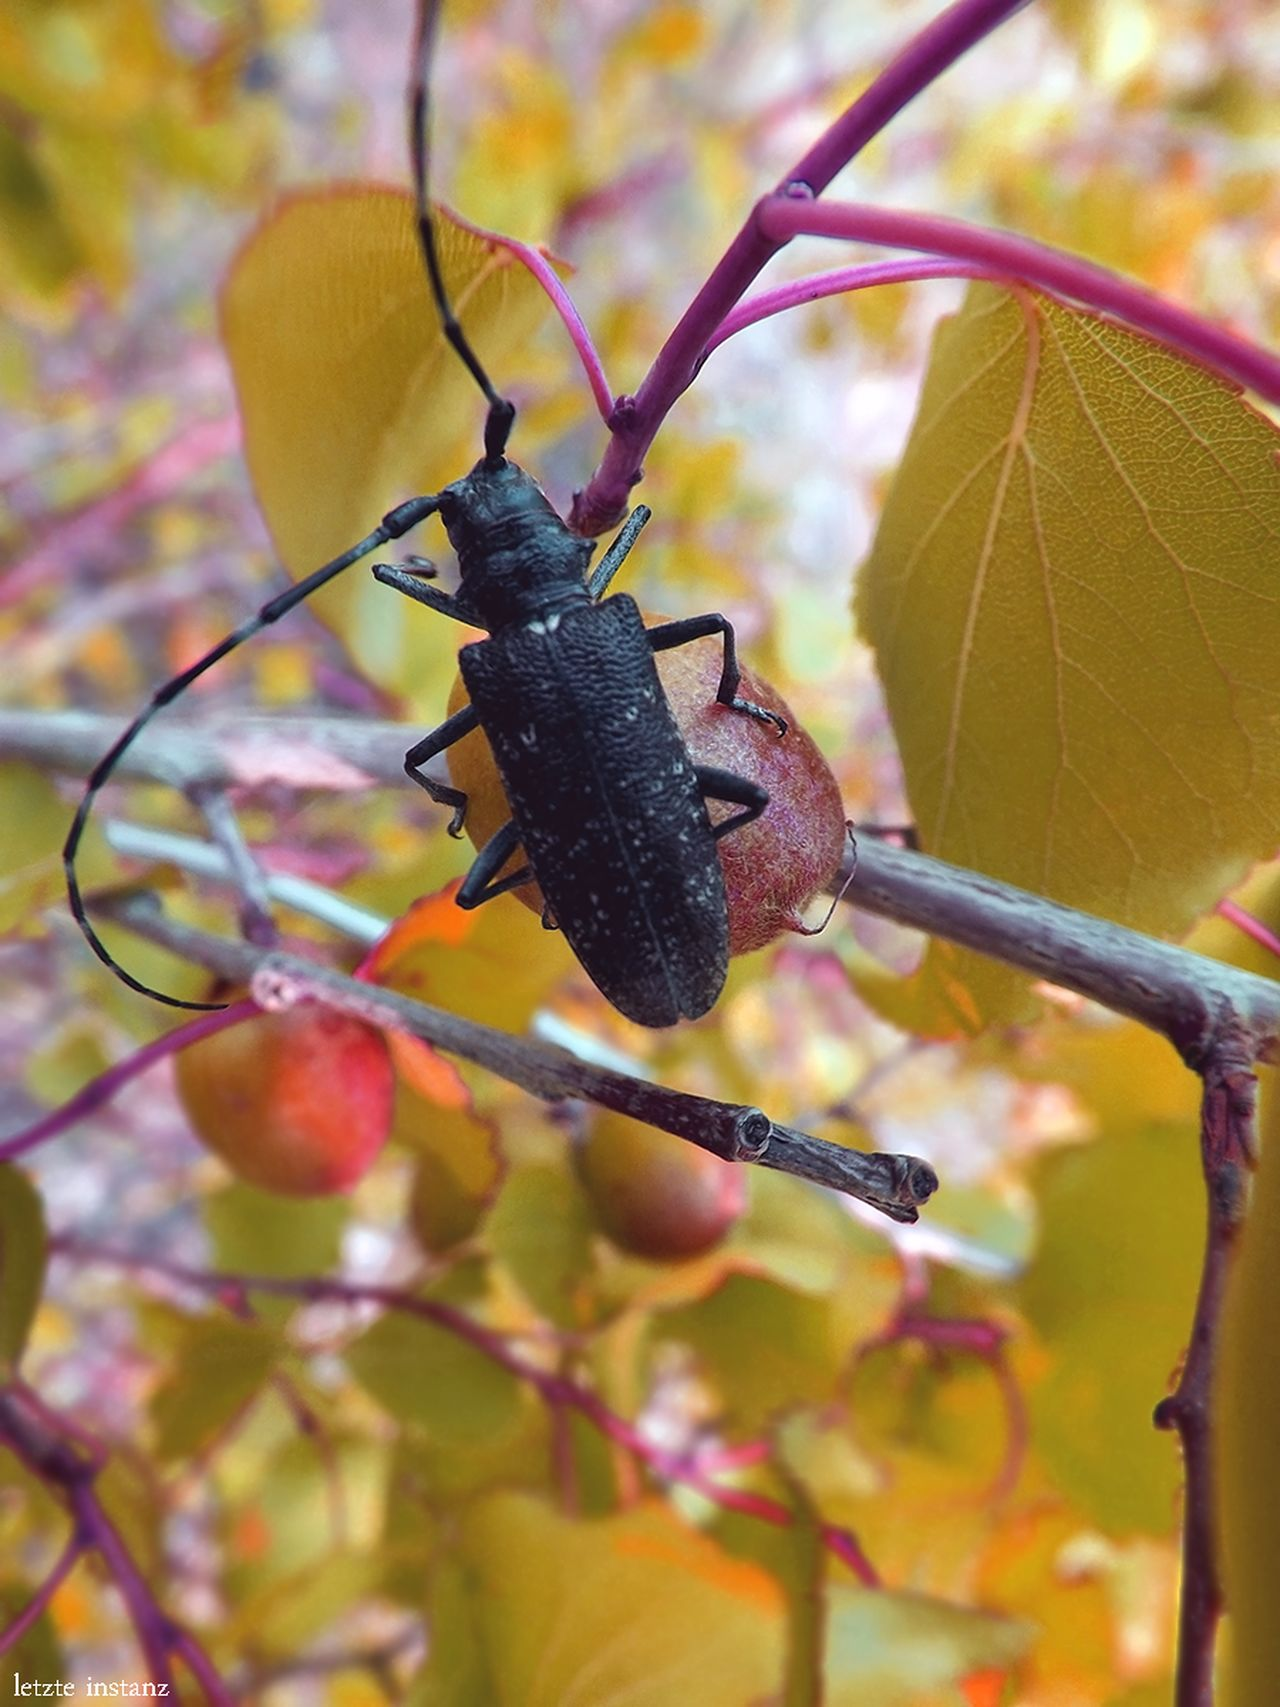 Beetle Insect Macro Nature Transbaikalia Забайкалье Black Beetle Autumn Apricot Beetle-barbel Apricot Tree Day No People